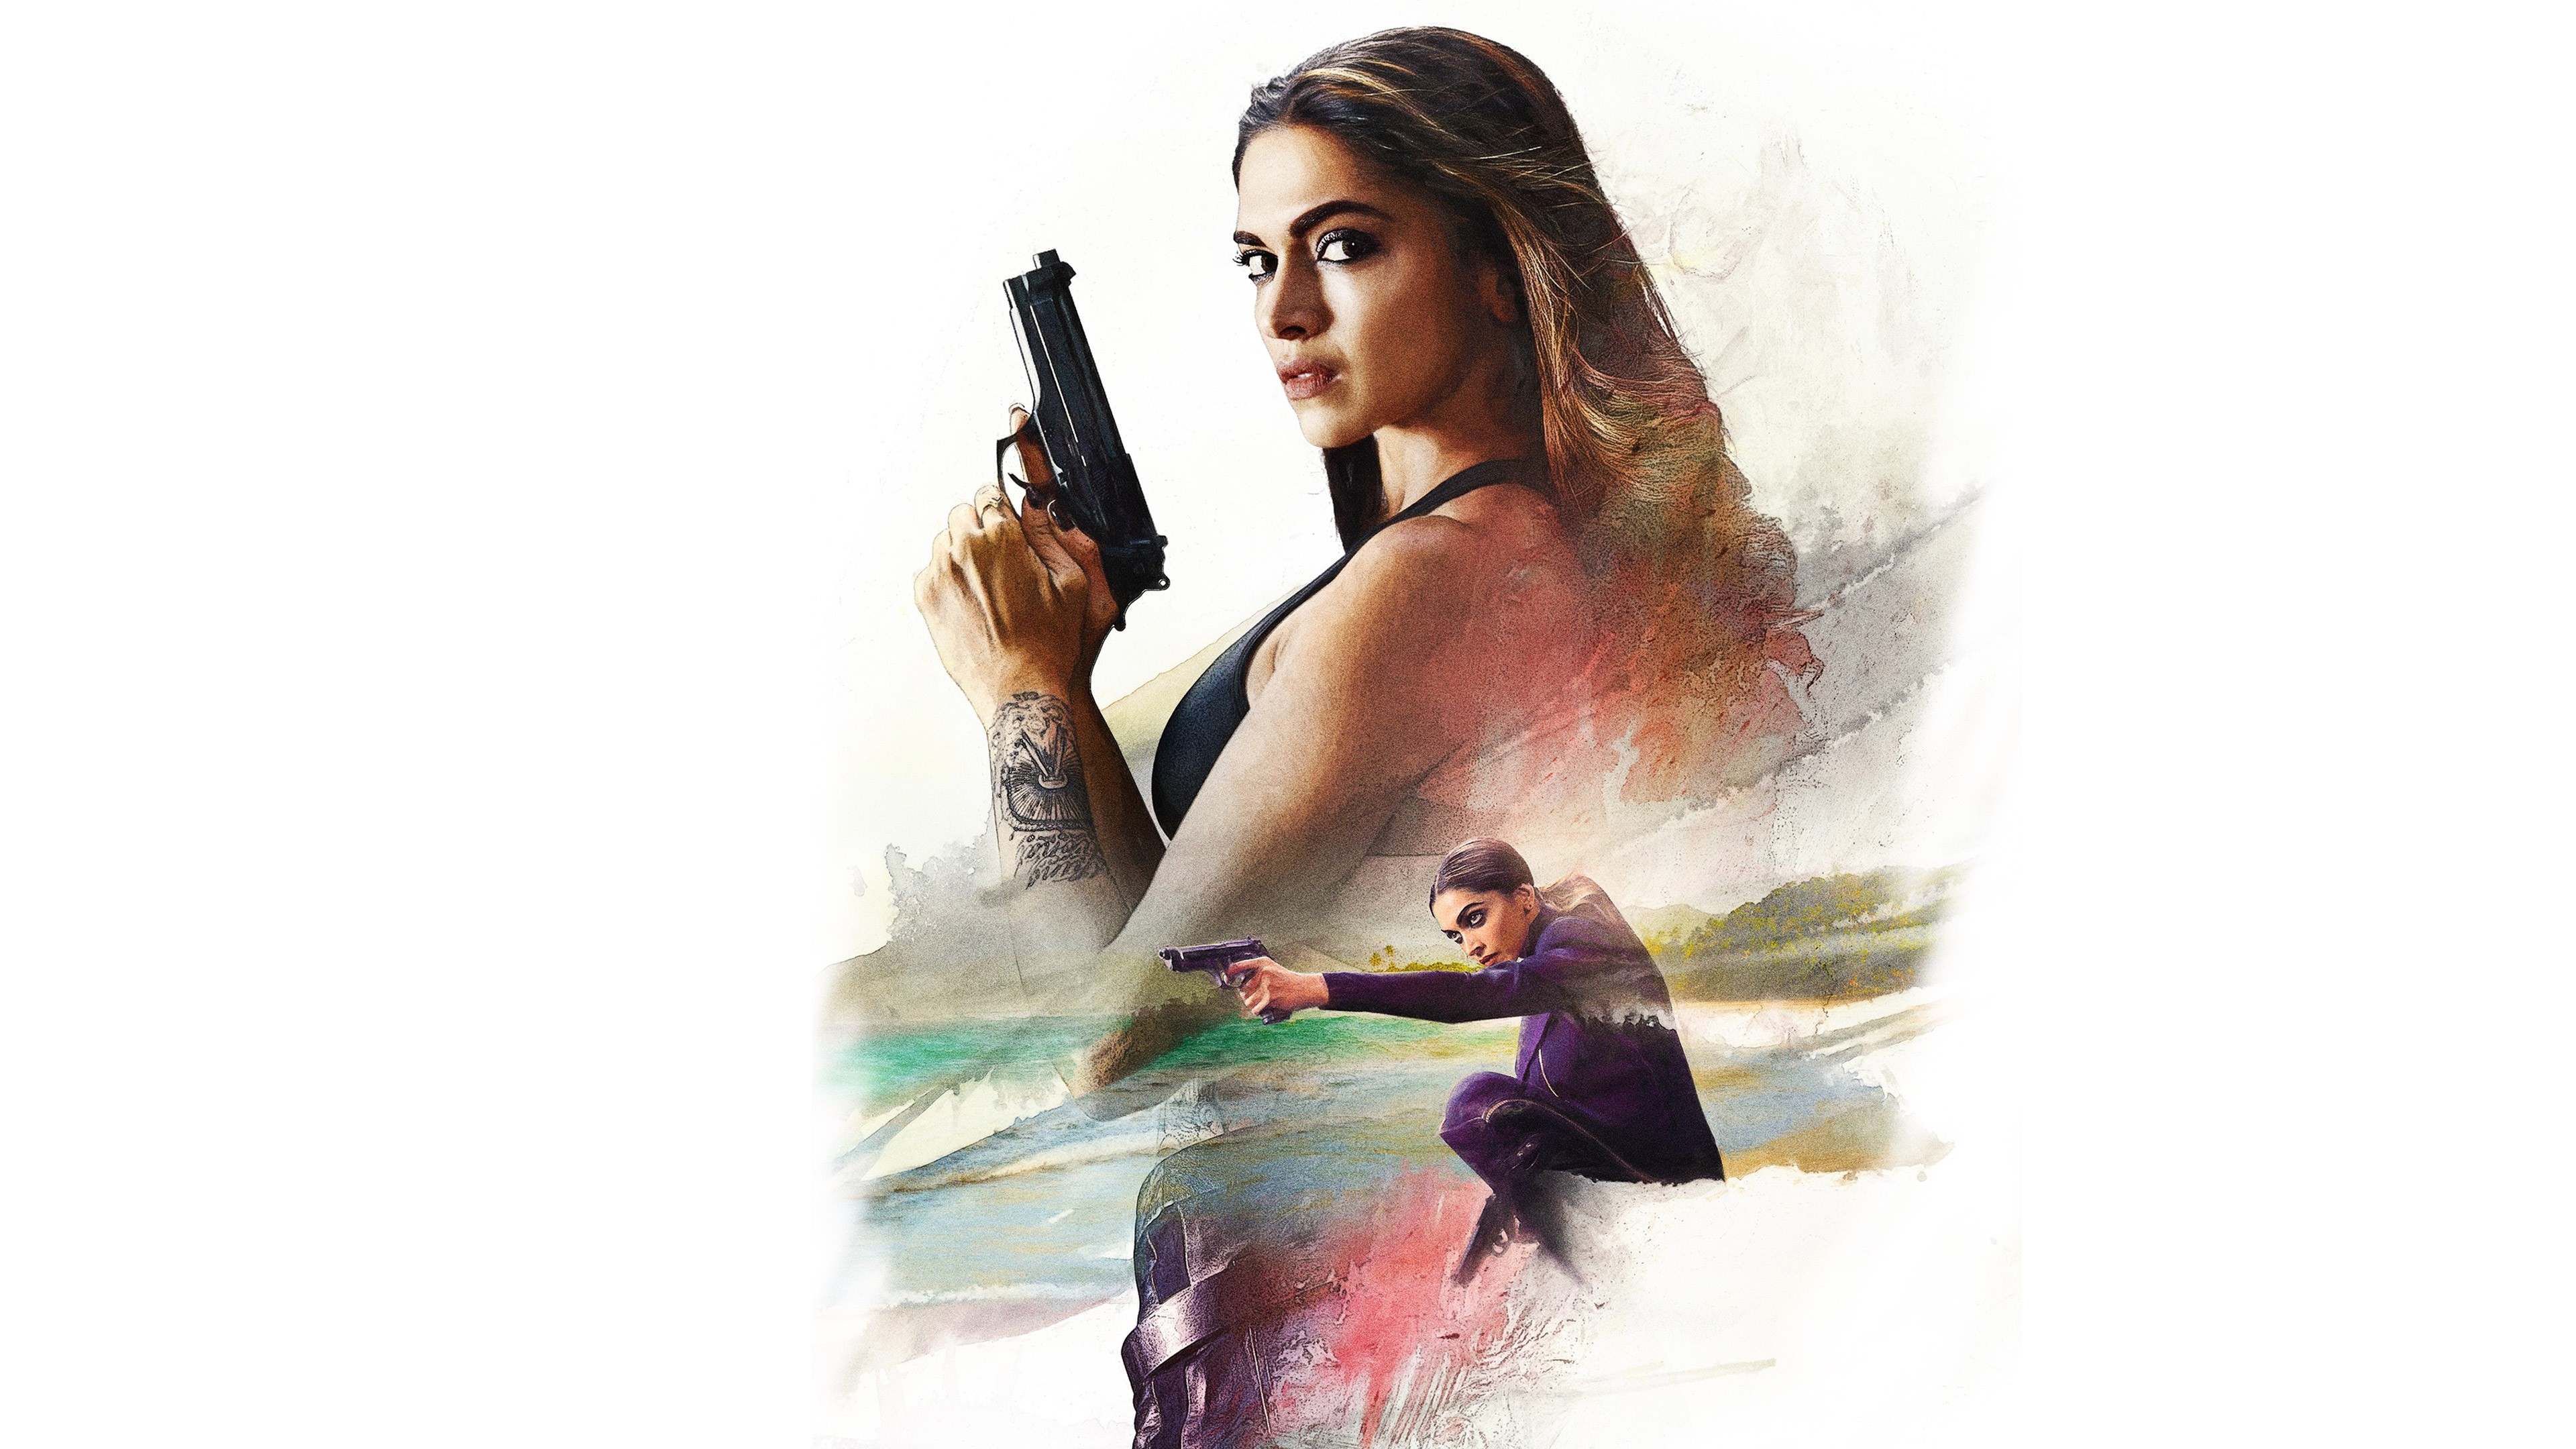 wallpaper xxx: return of xander cage, deepika padukone, best movies